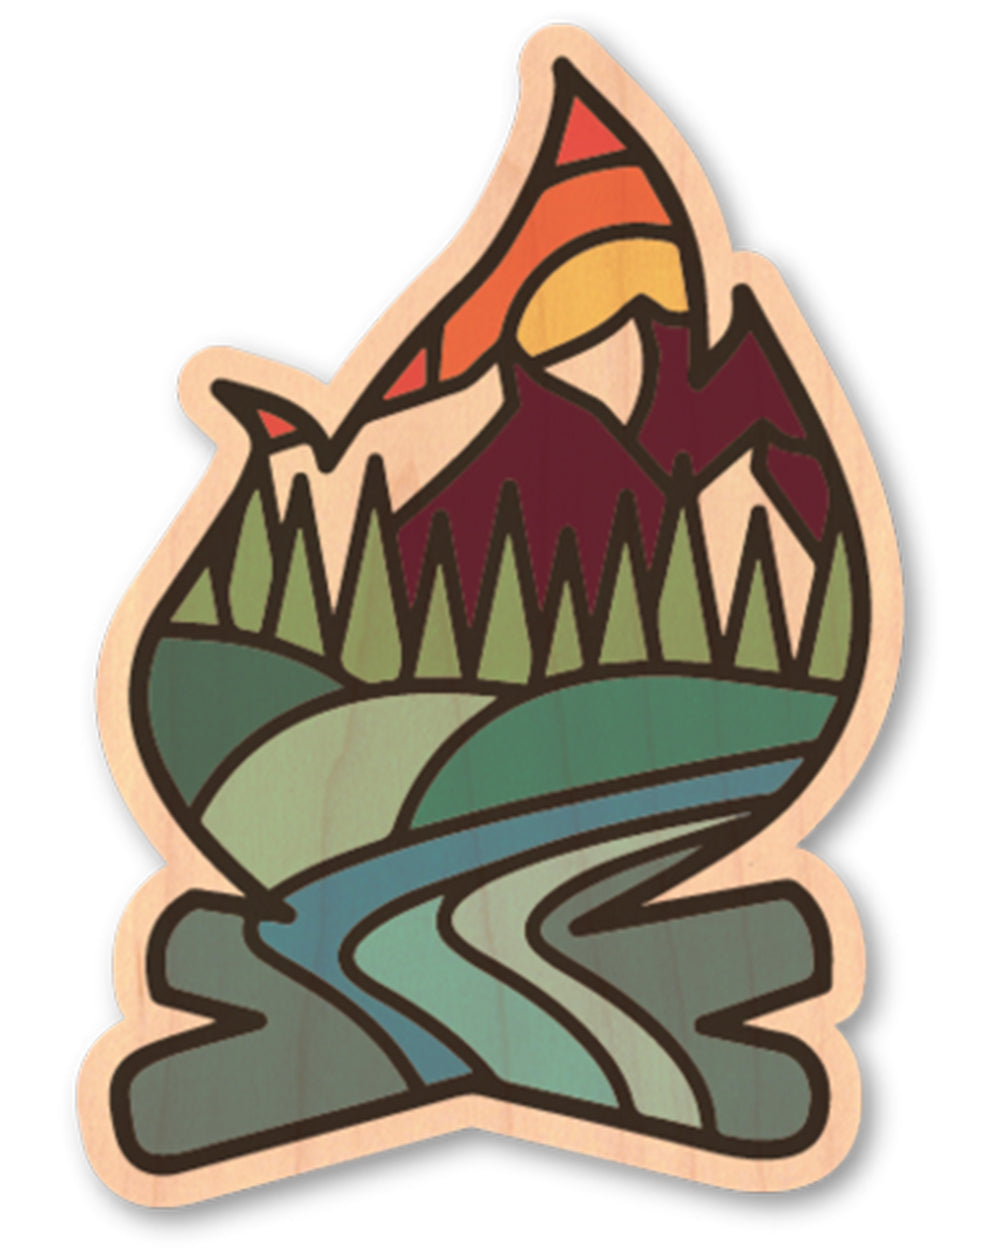 Campfire Wood Sticker - Atomic Child